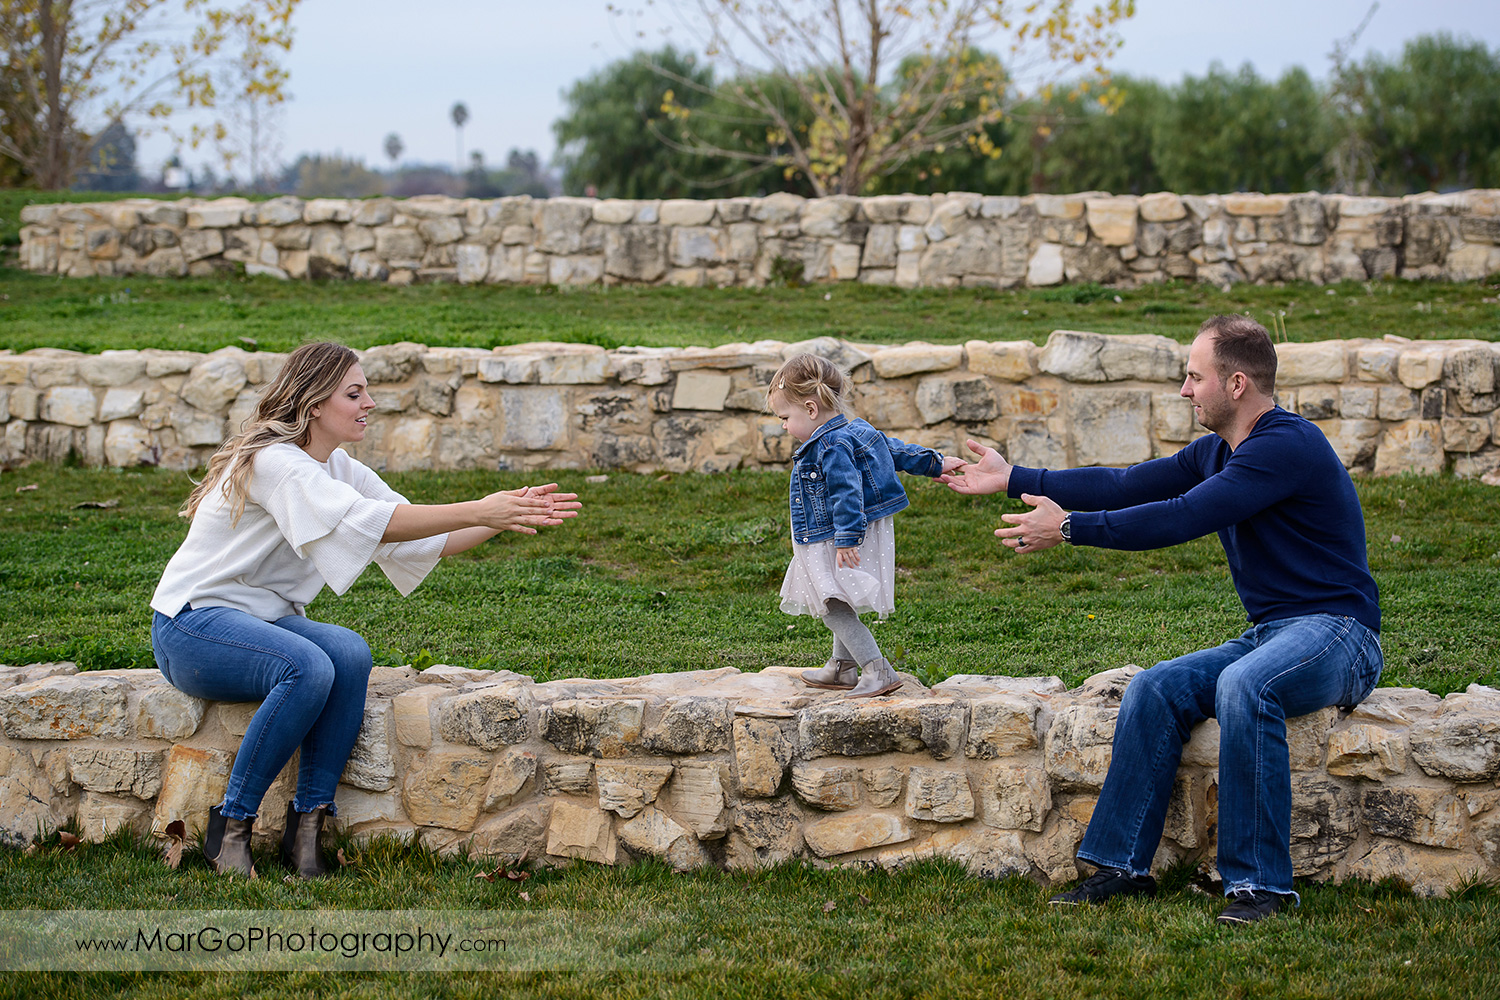 little girl in white dress and jeans jacket walking on the stone wall from father wearing navy blue sweater to mother in white blouse during family session at San Jose Martial Cottle Park